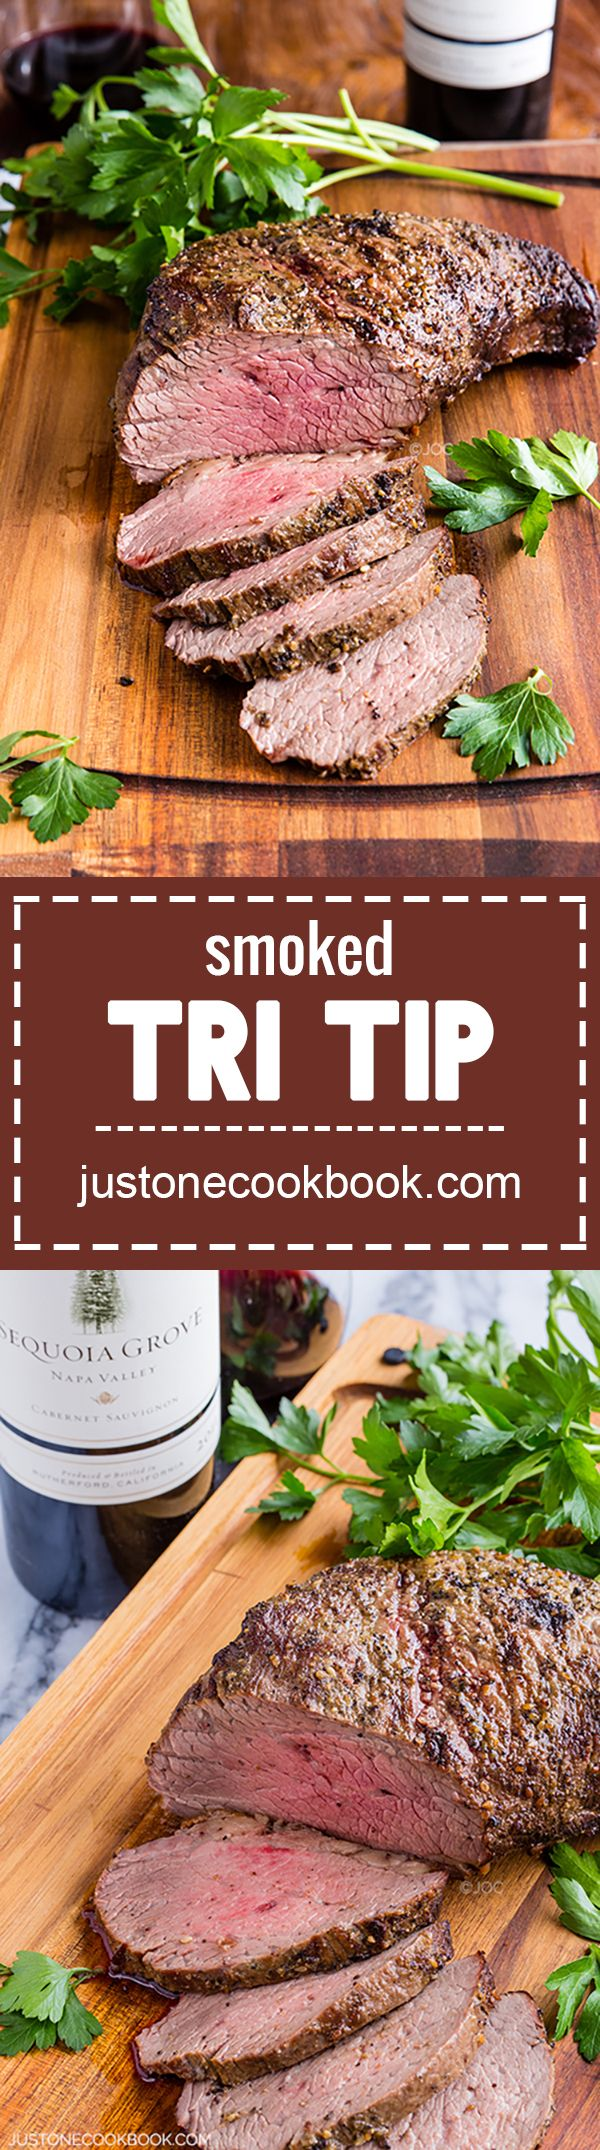 Smoked Tri Tip | Easy Japanese Recipes at JustOneCookbook.com